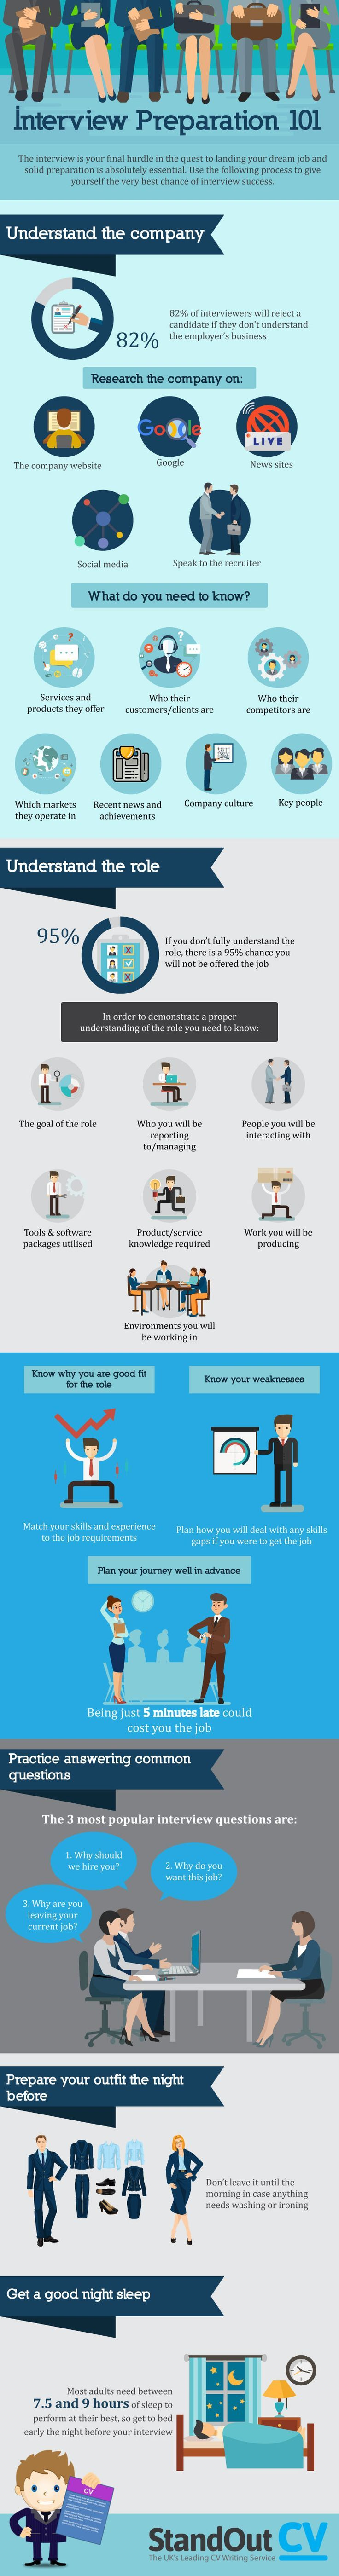 Reaching interview stage is great for your job hunt but the hard work isn't over yet. Solid preparation will give you the very best chance of landing that job,